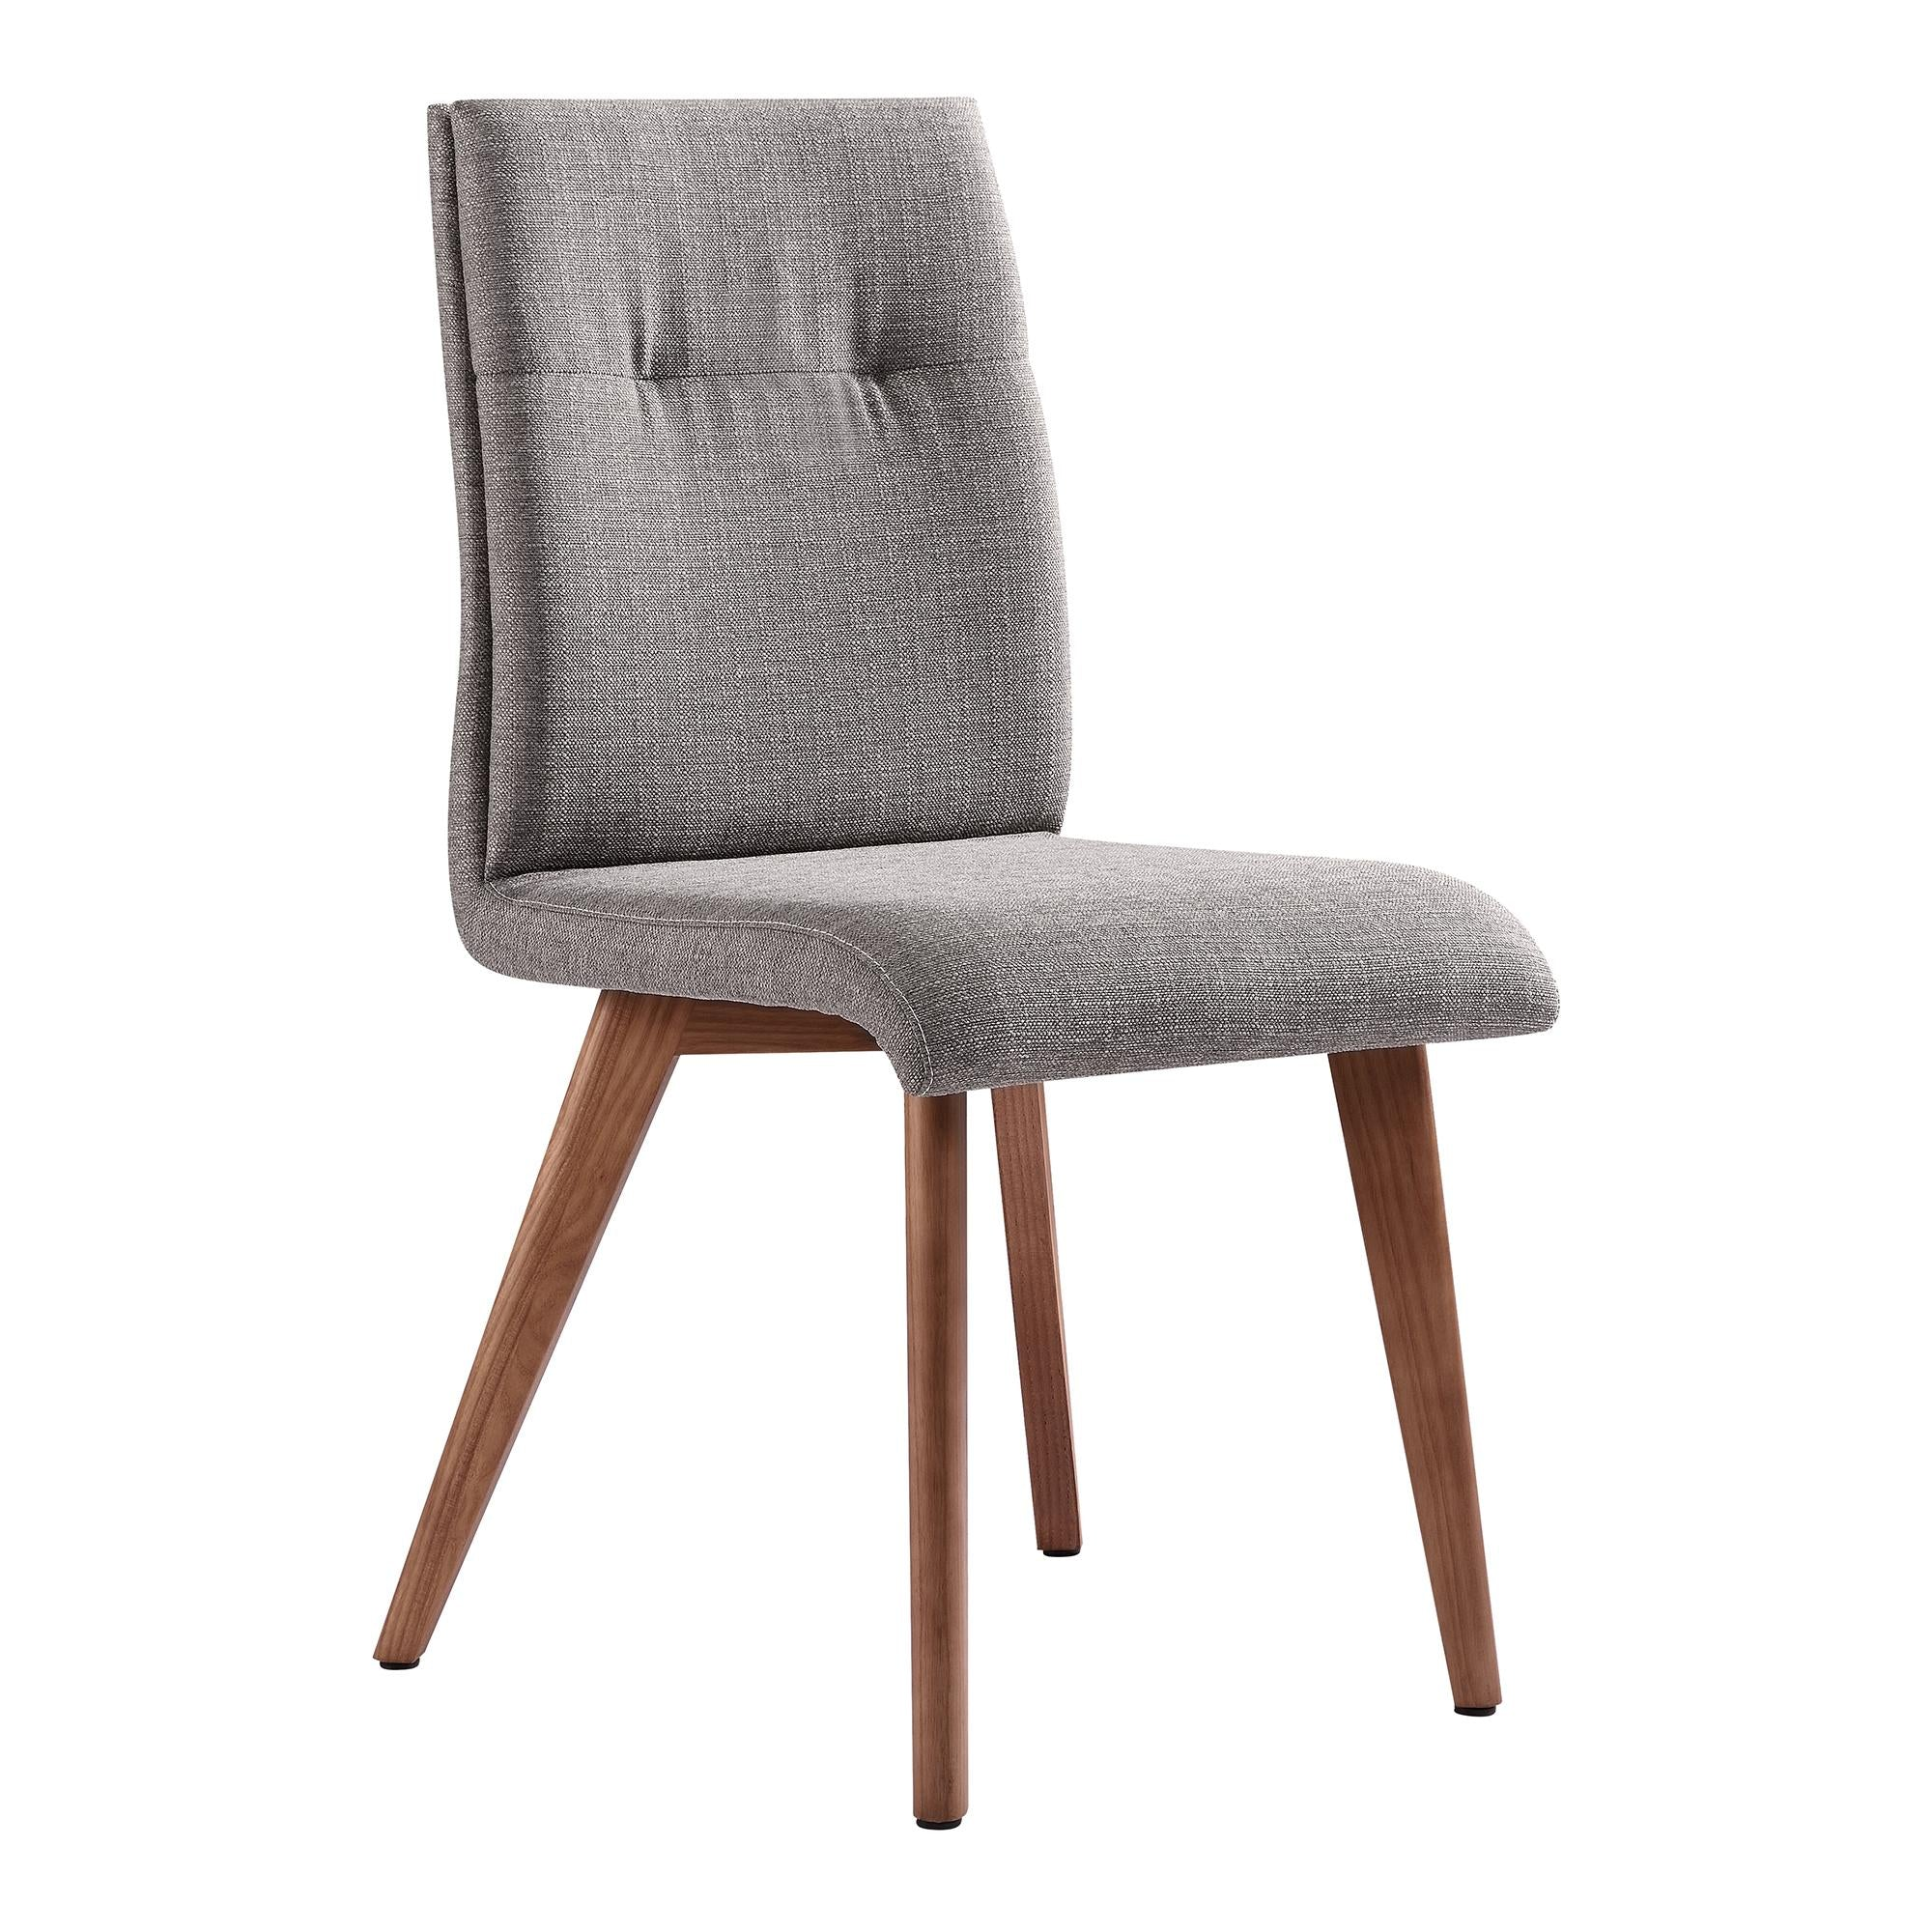 Noble Mid-Century Dining Chair in Walnut Finish and Gray Fabric - Set of 2